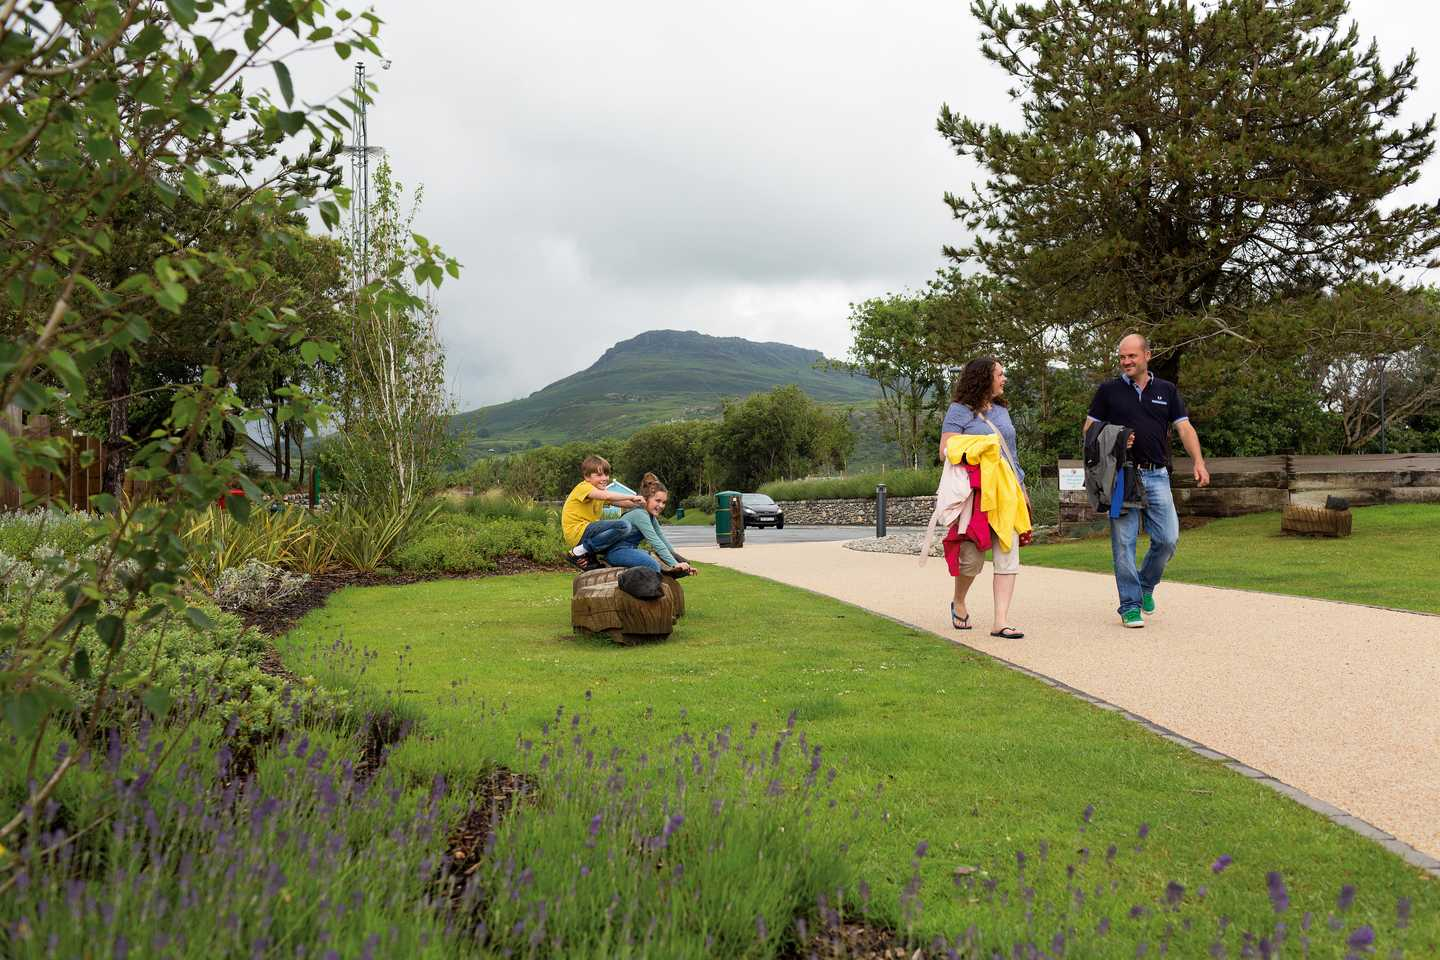 A family walking through Greenacres Holiday Park with a tall, green mountain in the background and purple lavender plants in the flower beds